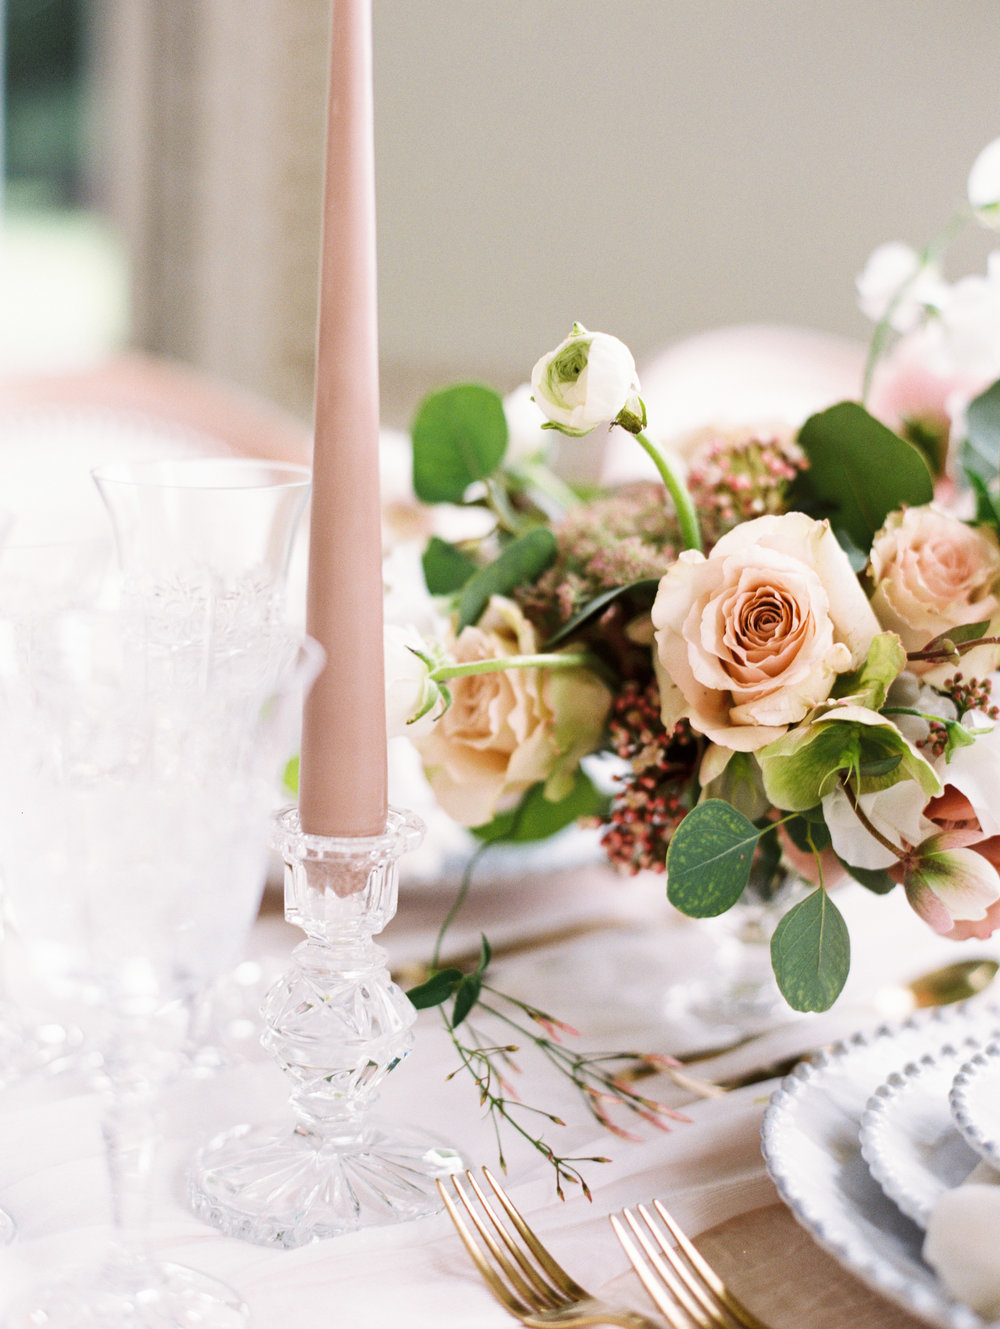 The Timeless Stylist-Elegant and Romantic Wedding Styling-Neutral Palette Wedding Table Flowers